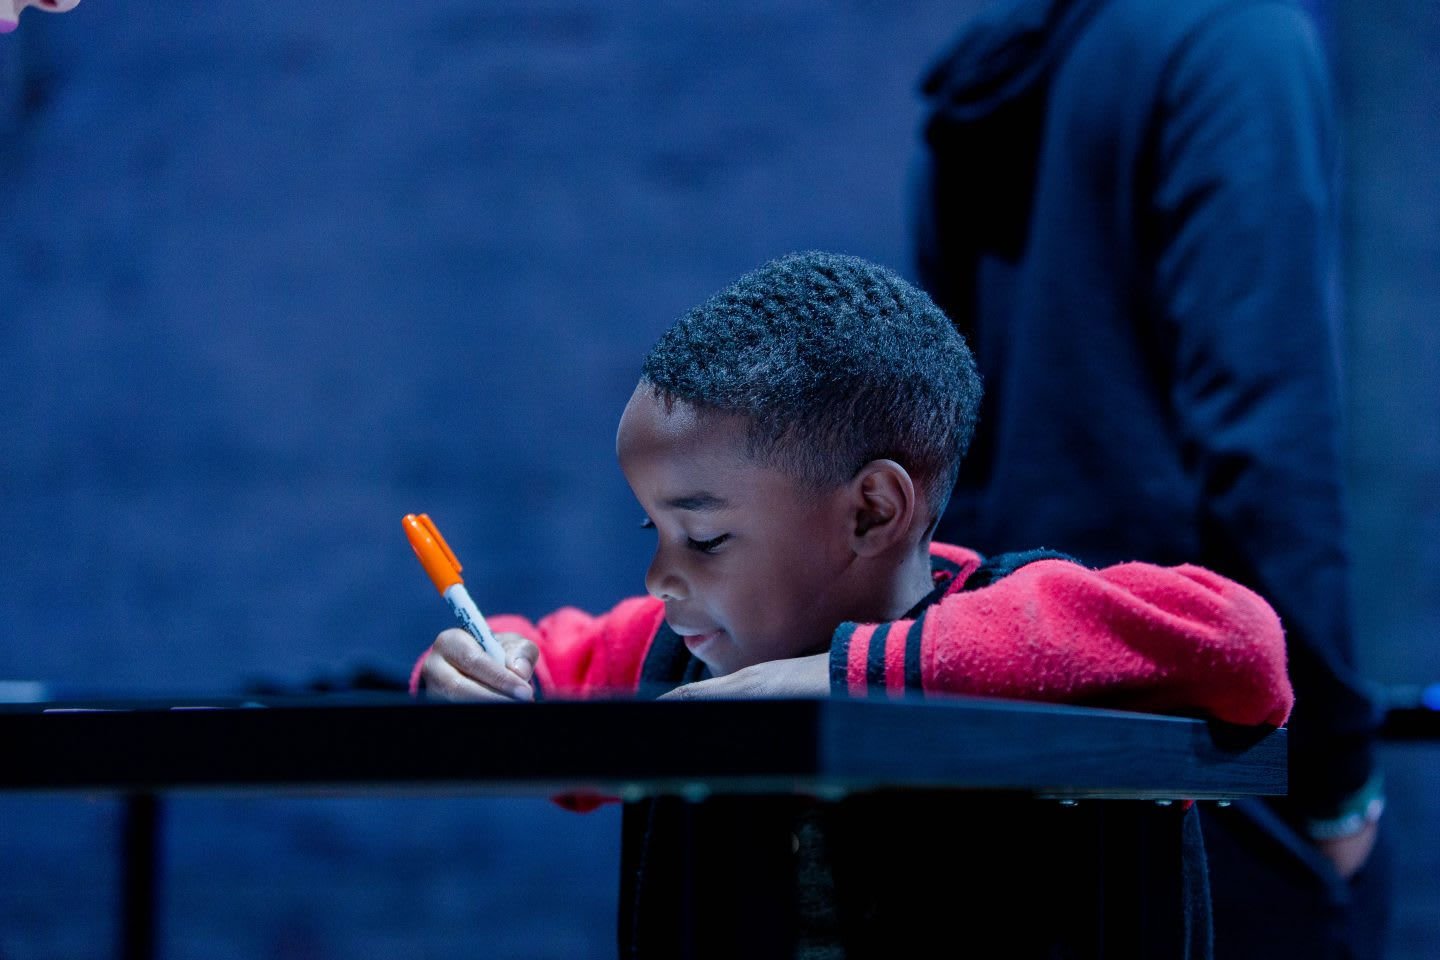 A little boy leans on a table as he draws on a piece of paper with a pen. creative, imagination, creativity, drawing